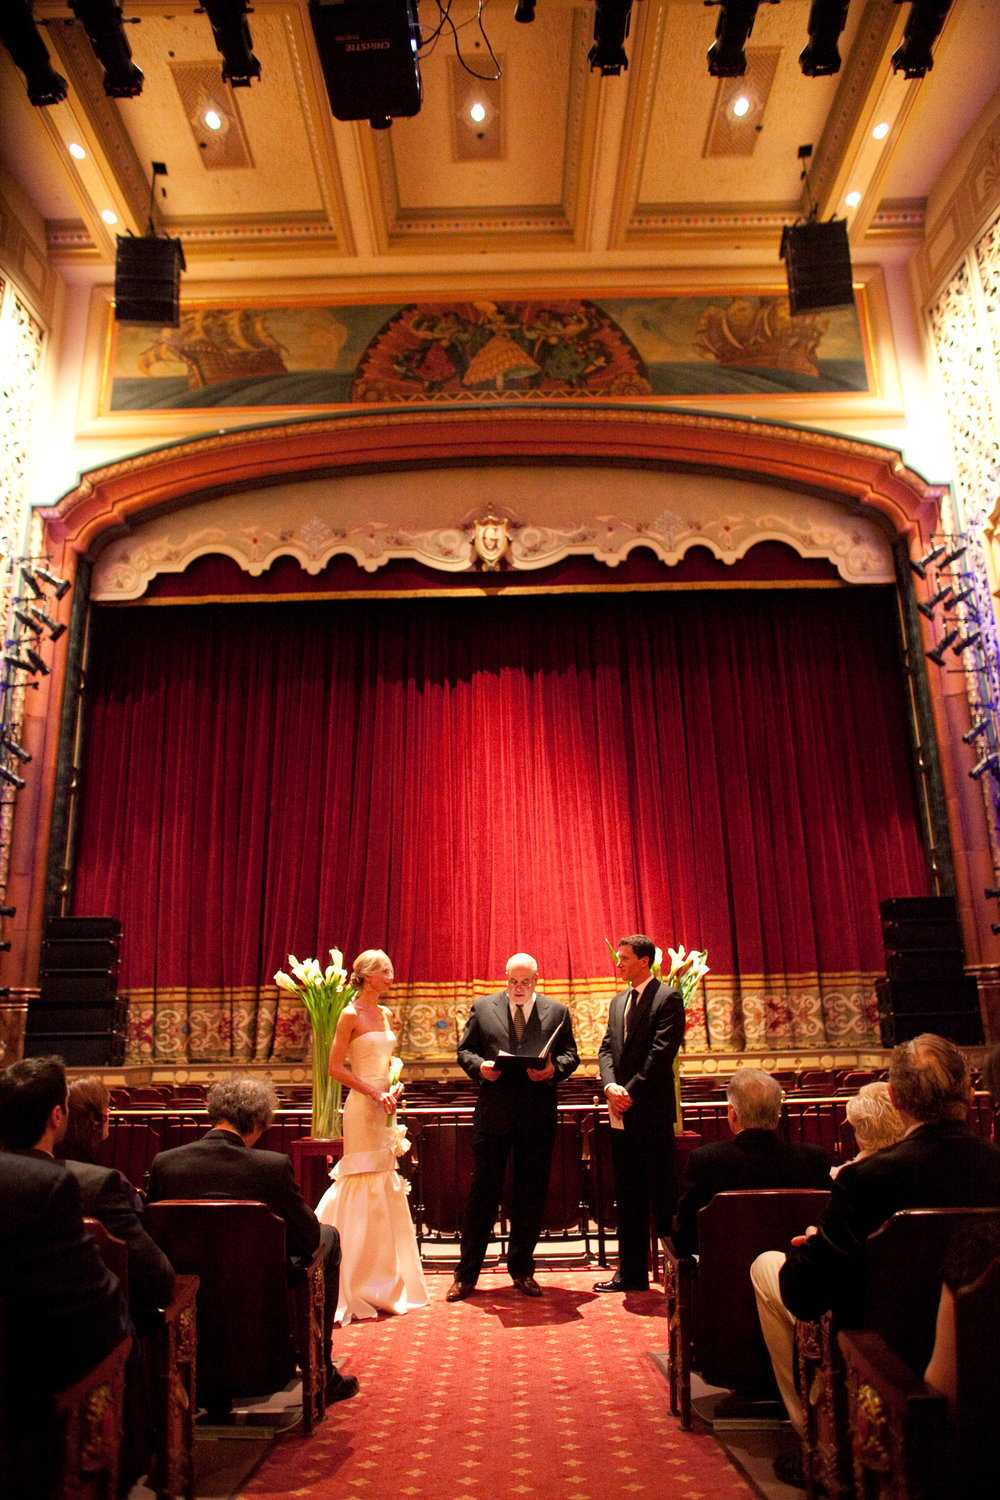 santabarbarawedding.com | The Granada Theatre | Theater Venue | Location Wedding Ceremony